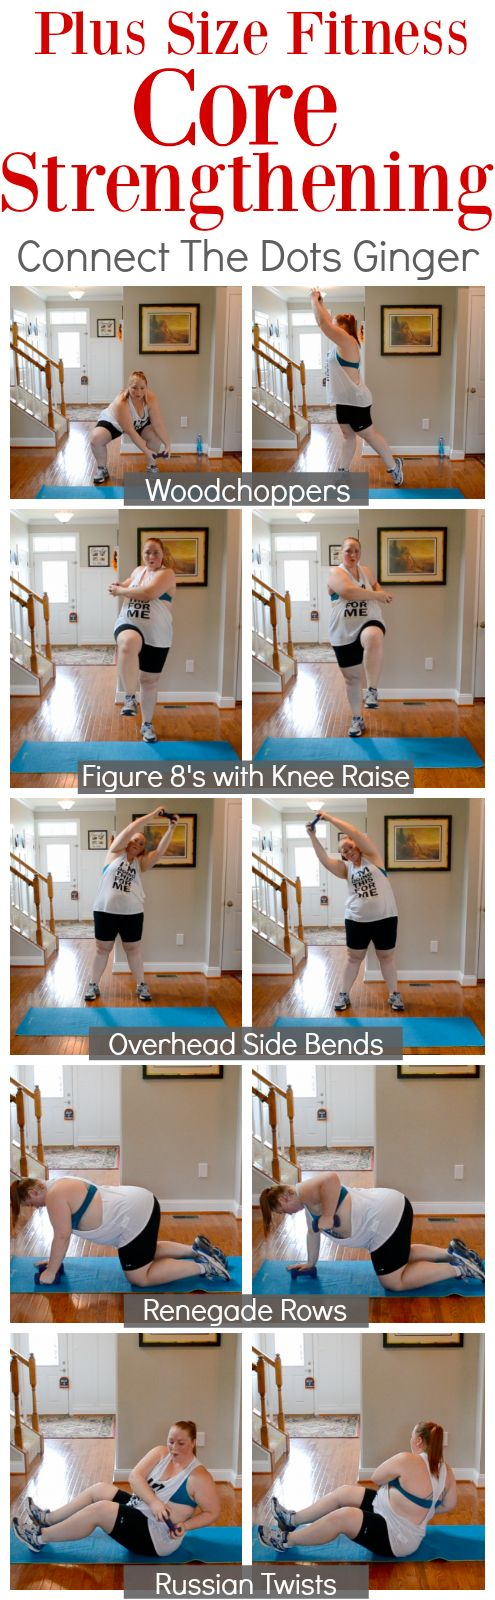 Plus size fitness core strengthening exercises! NO CRUNCHES NEEDED to rock this at home workout. workout video included